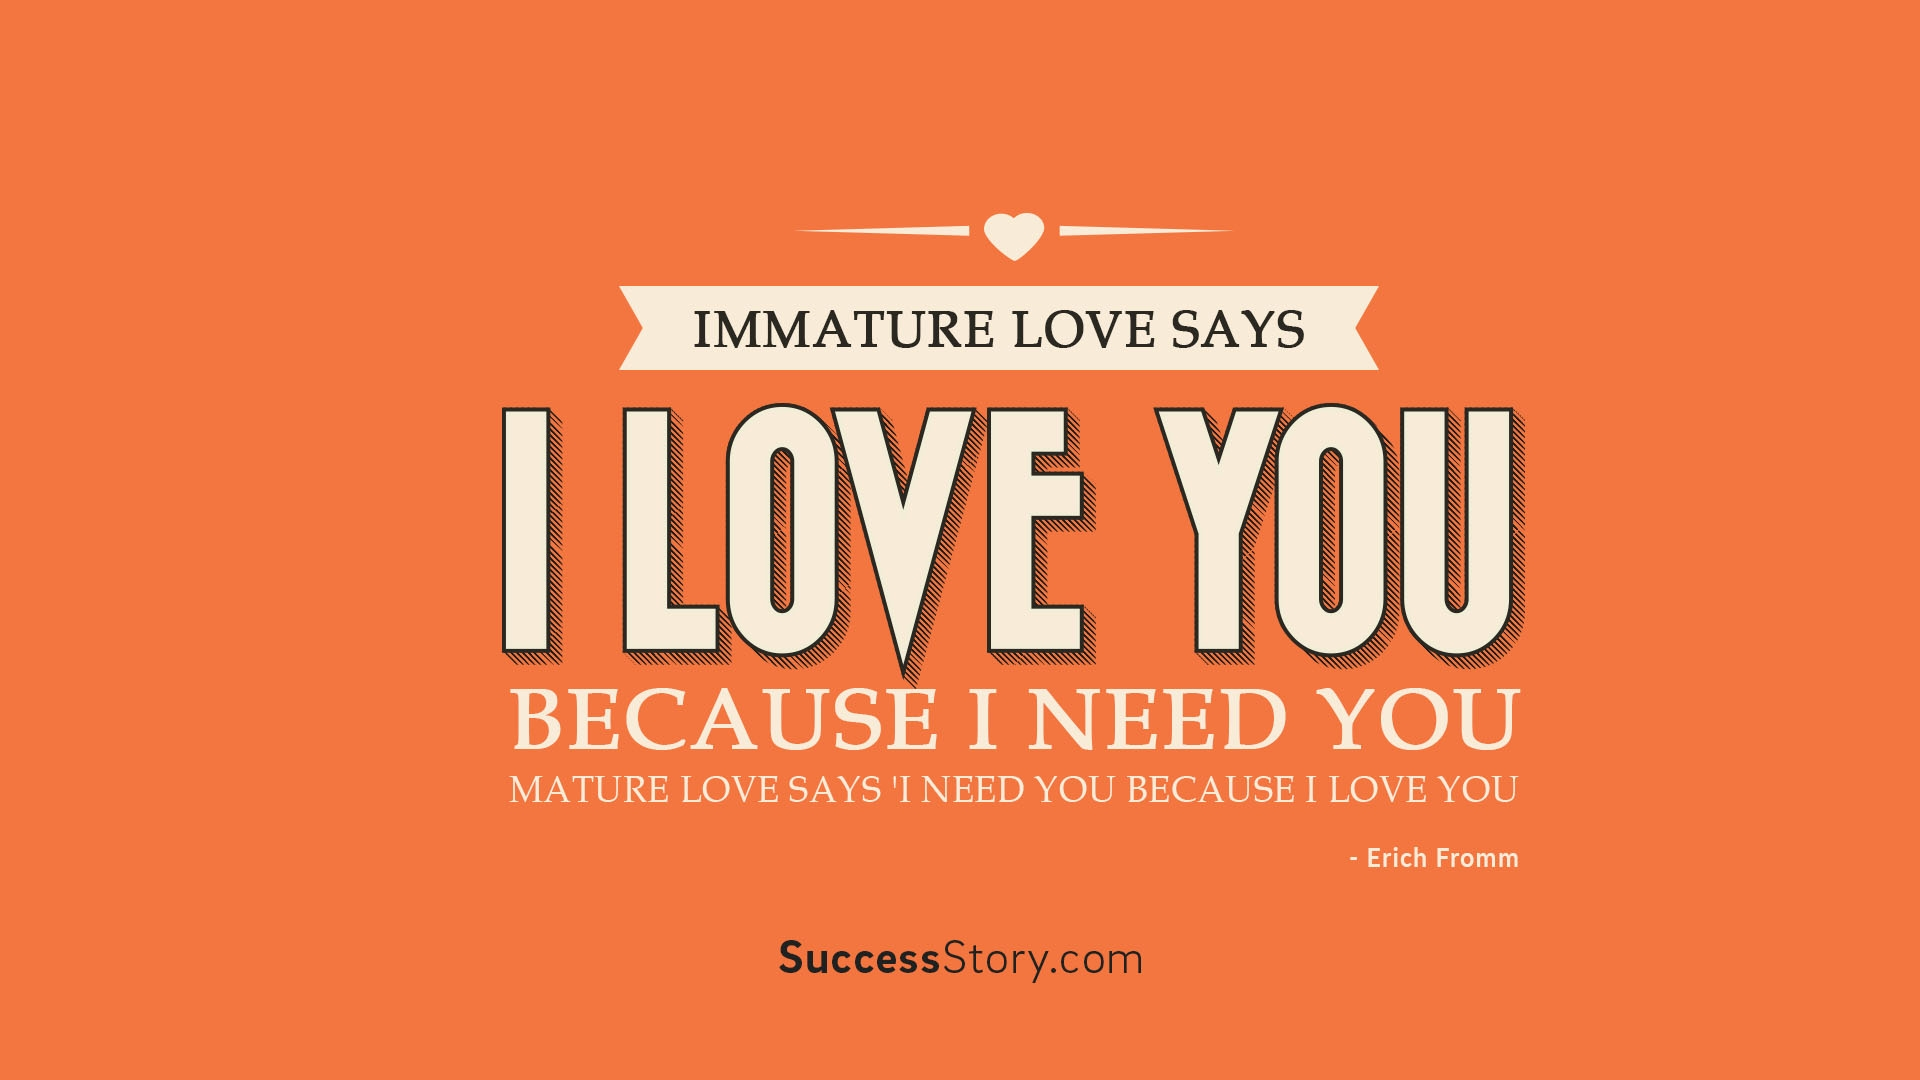 Immature love says I love you